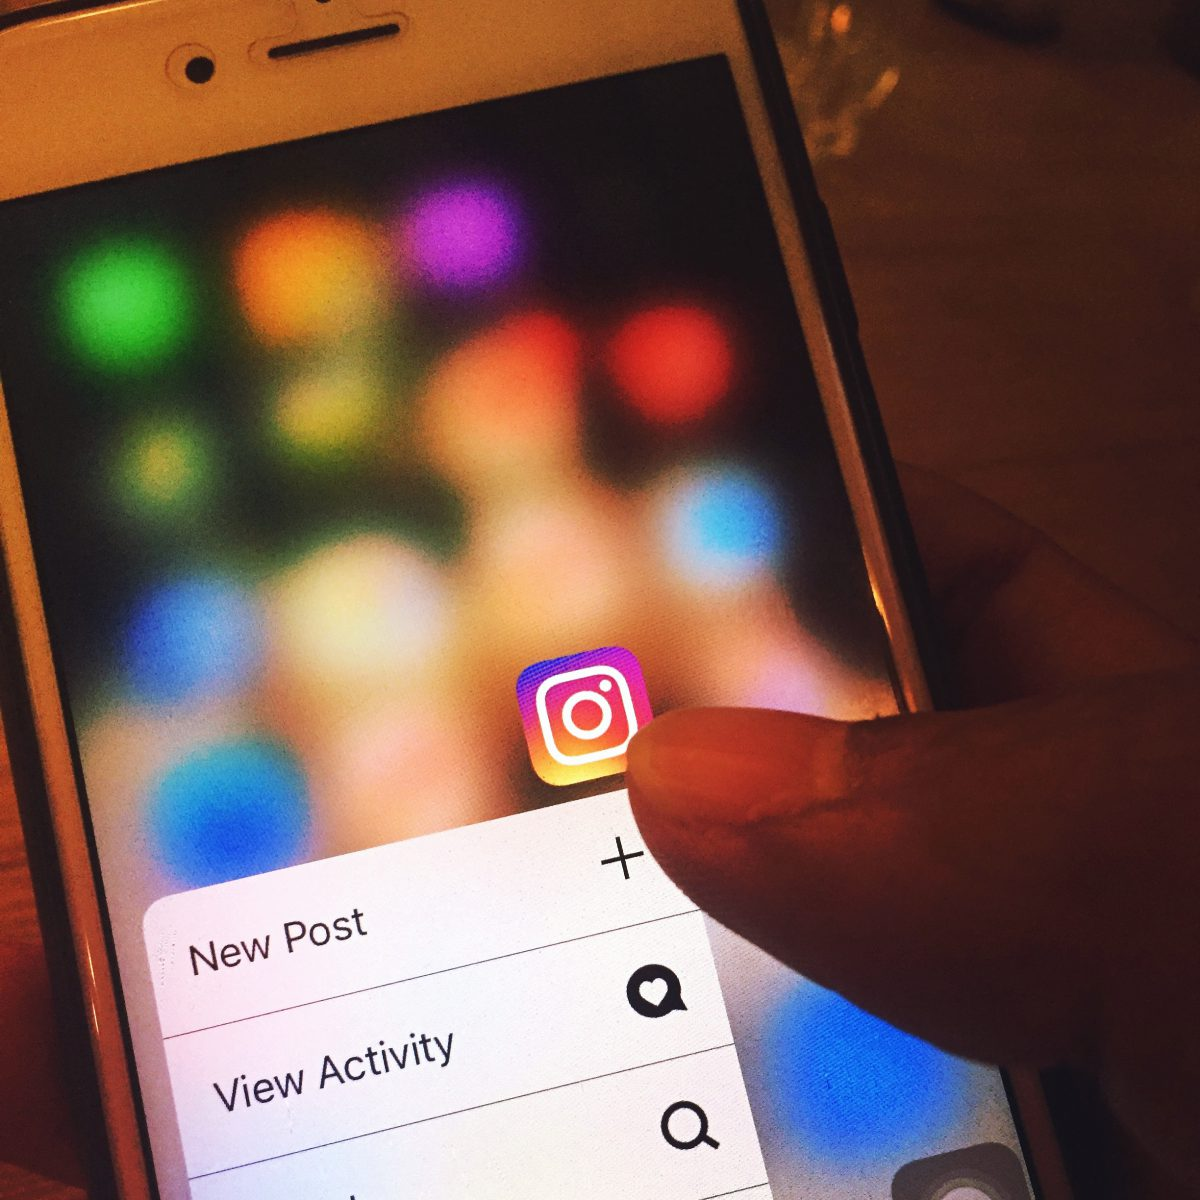 WHY IS INSTAGRAM THE FASTEST GROWING PLATFORM?